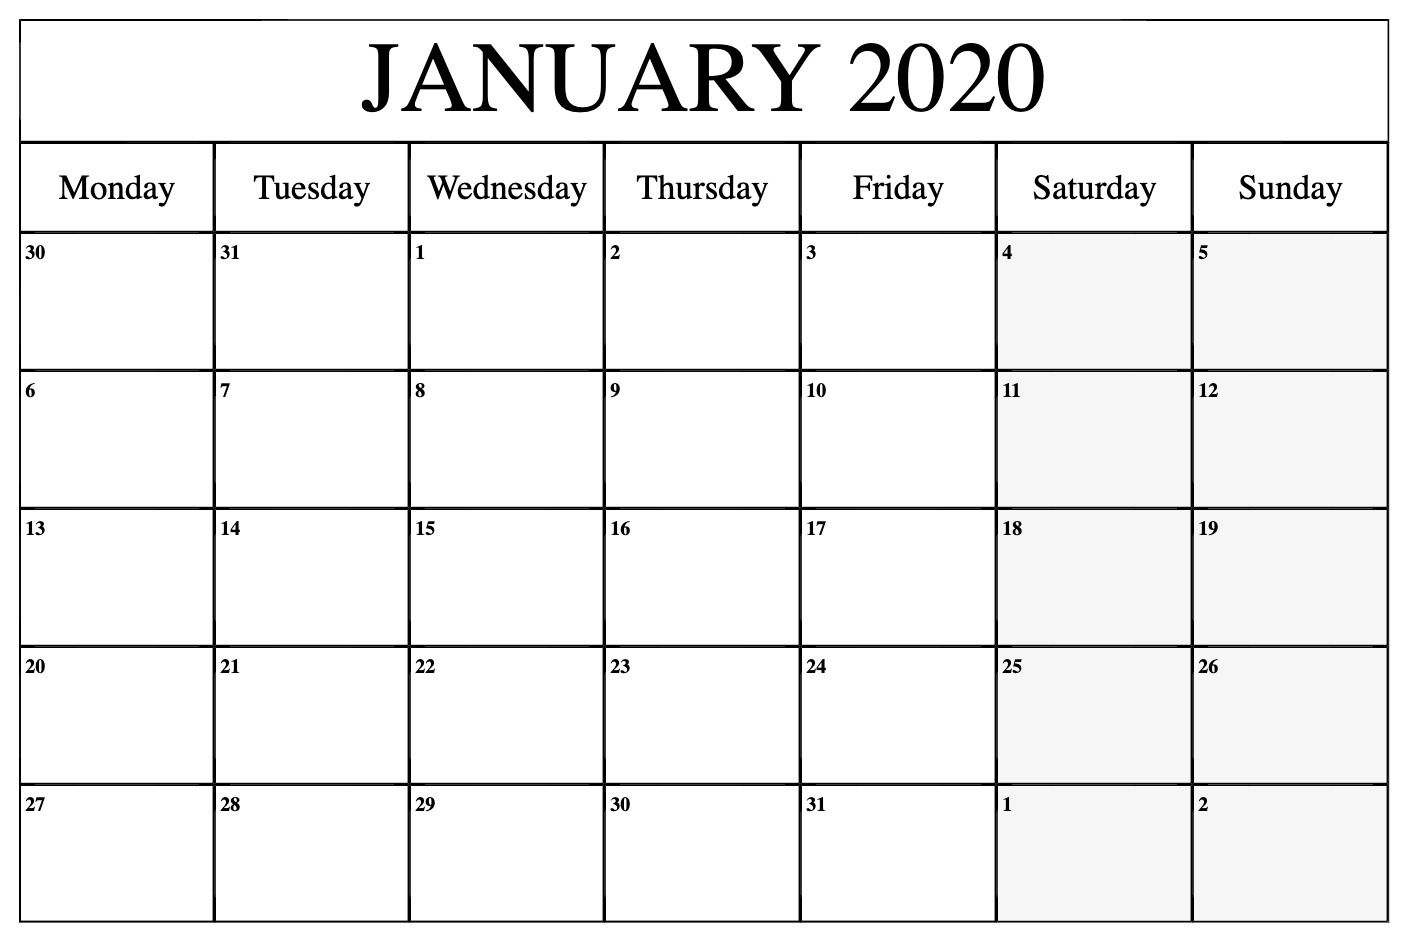 Free Printable 2020 Monthly Calendar With Holidays Word Pdf with regard to 2020 Calendar Printable Free Word Monthly